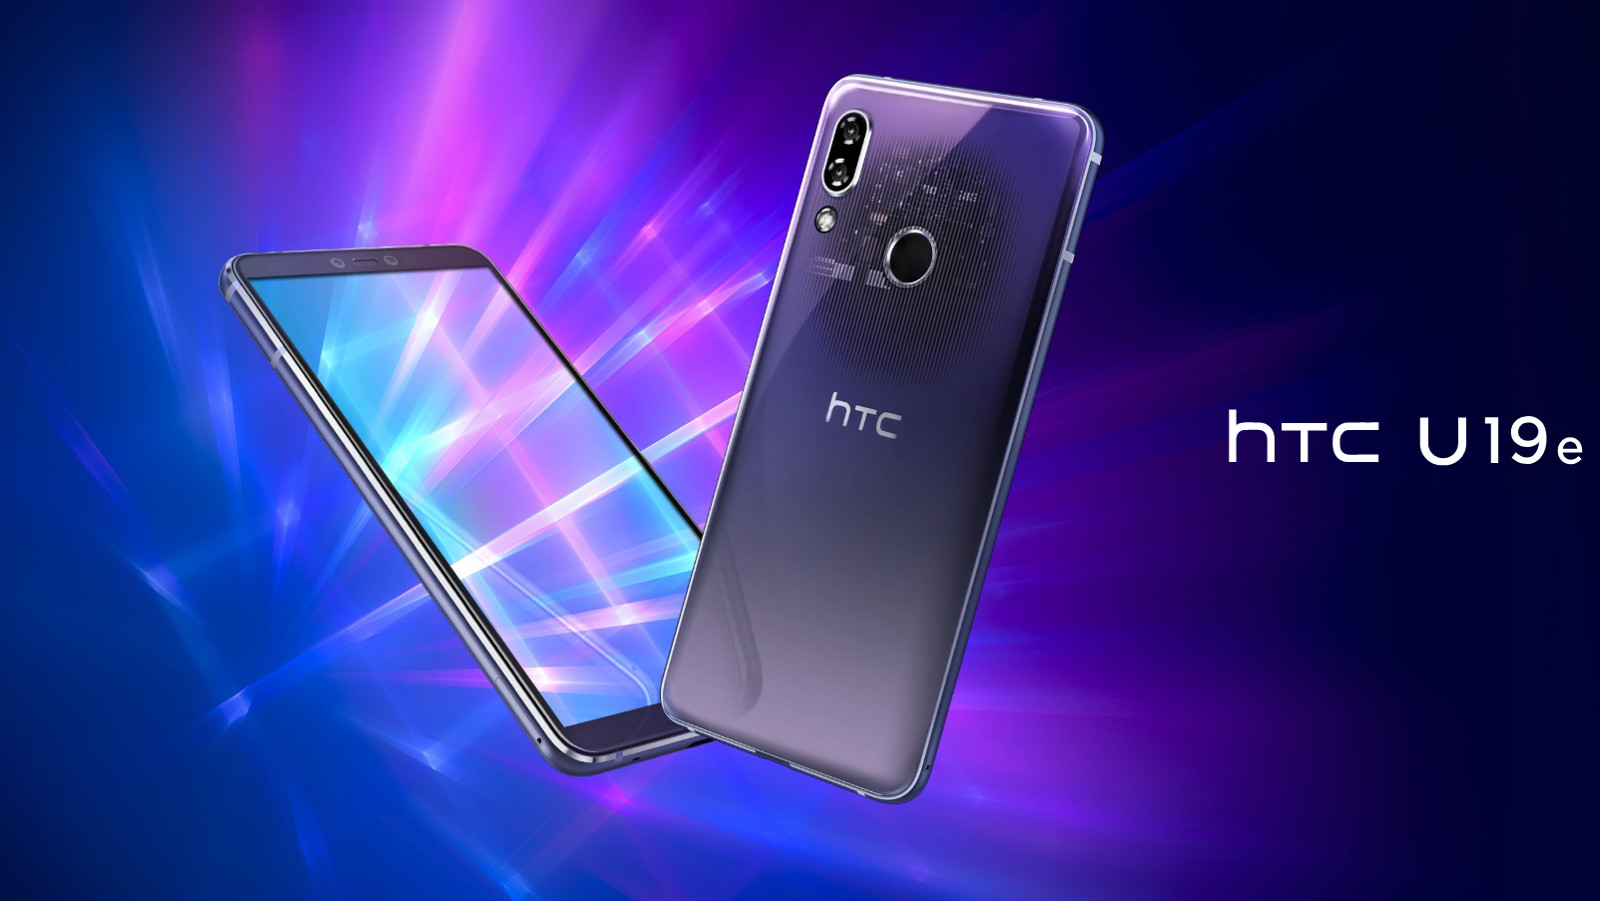 How to Root HTC U19e with Magisk without TWRP